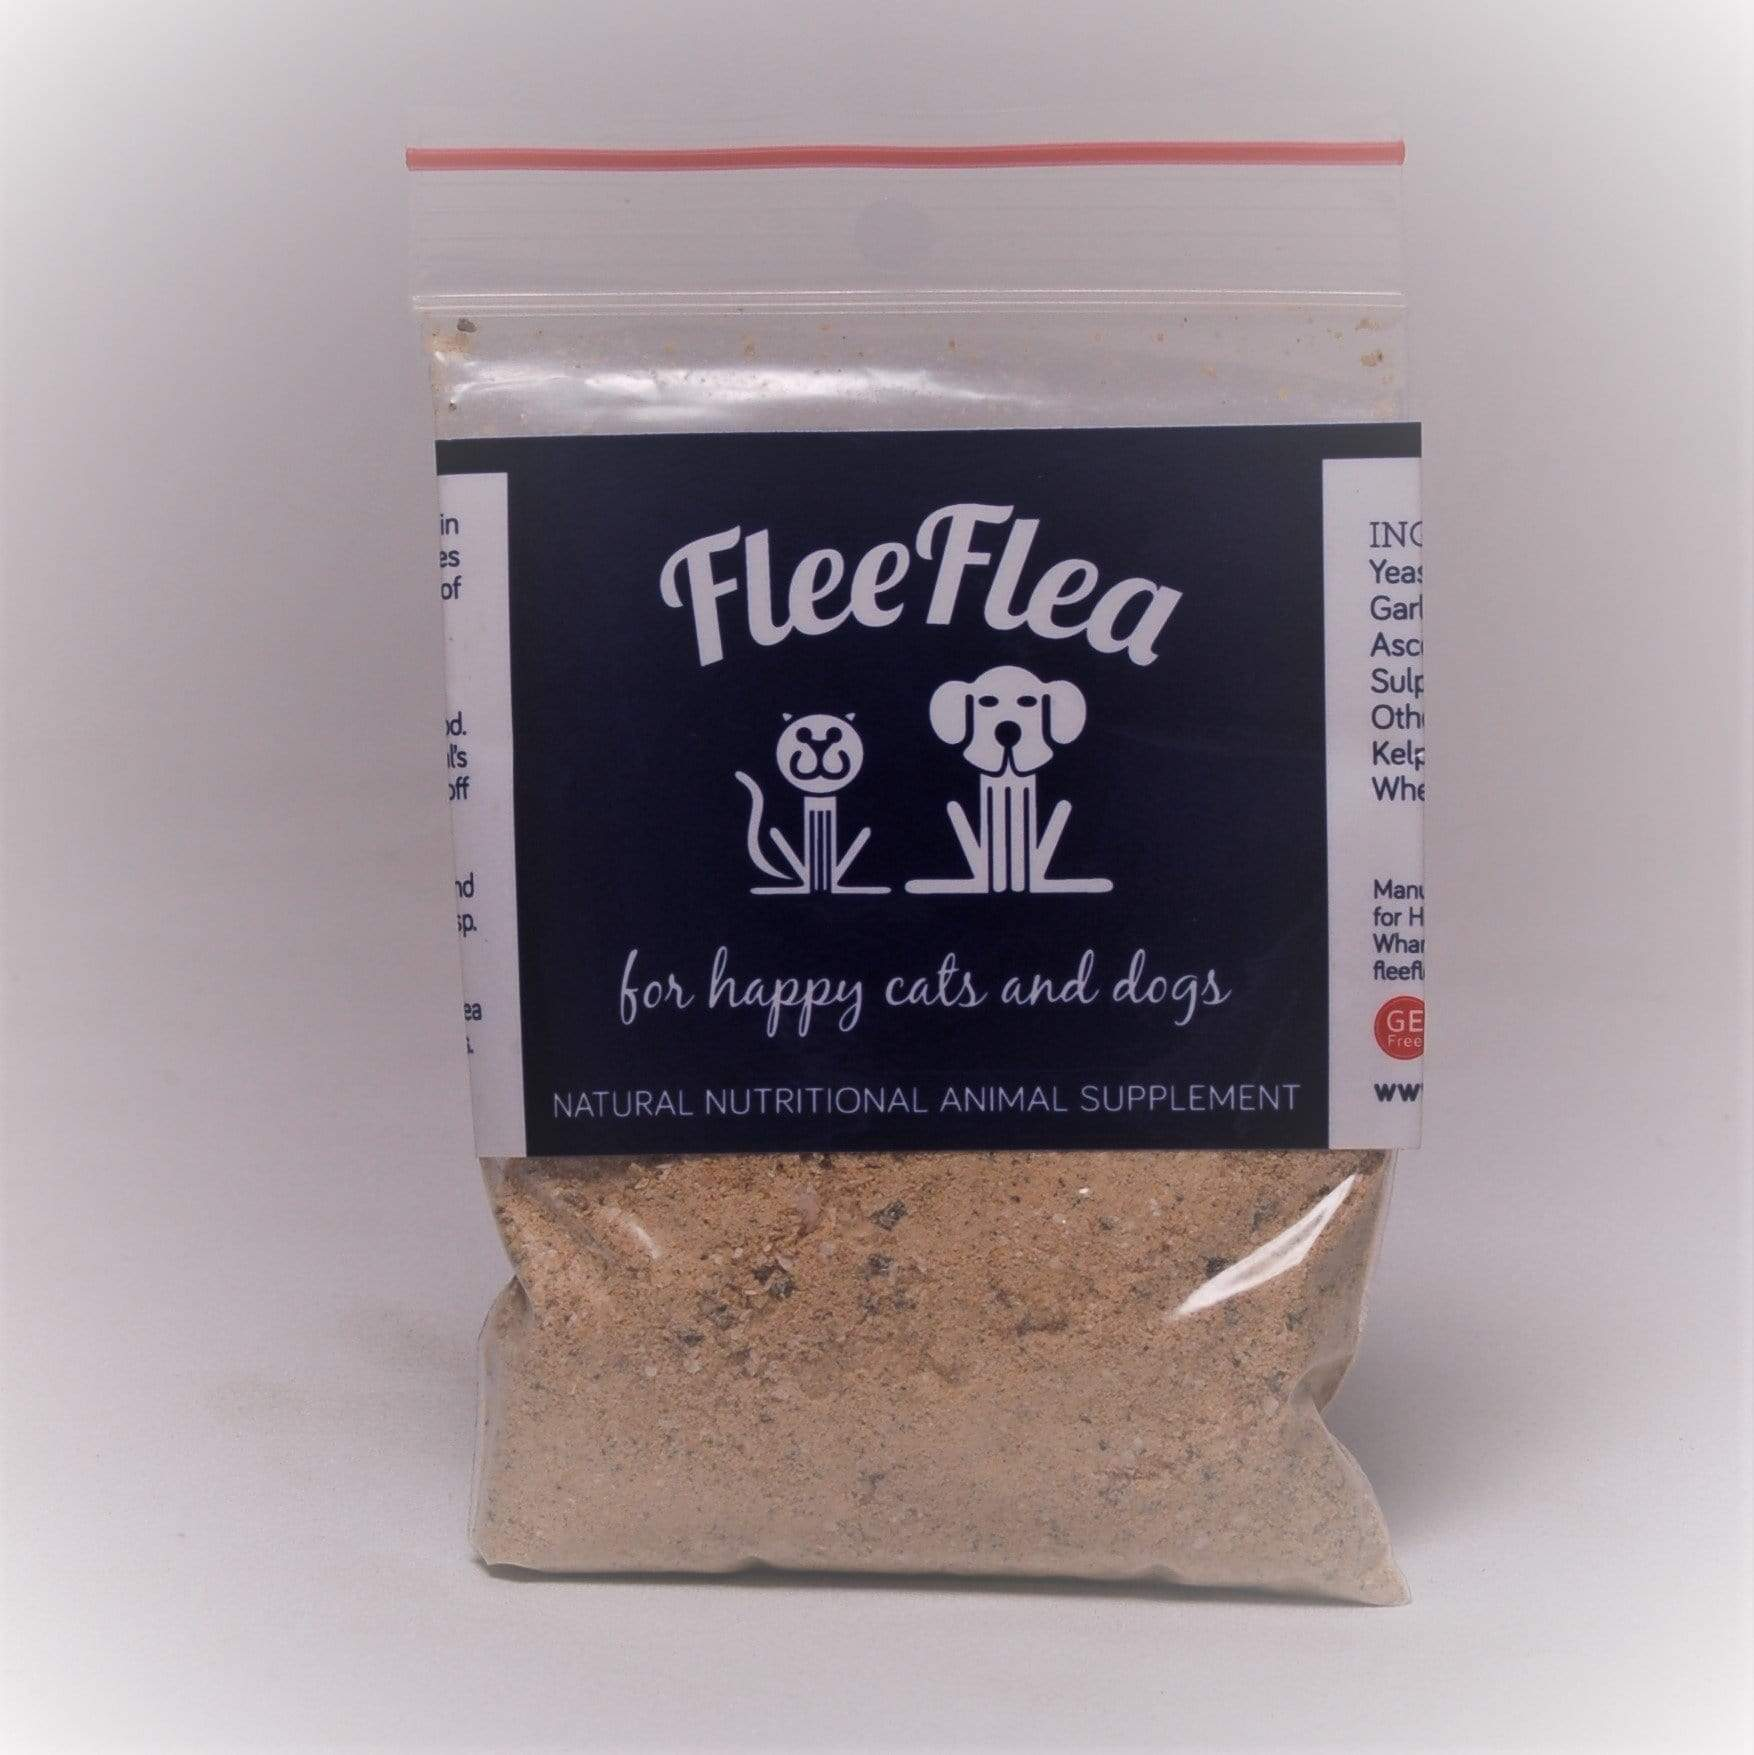 Flee Flea Supplements Flee flea sample bag 56g